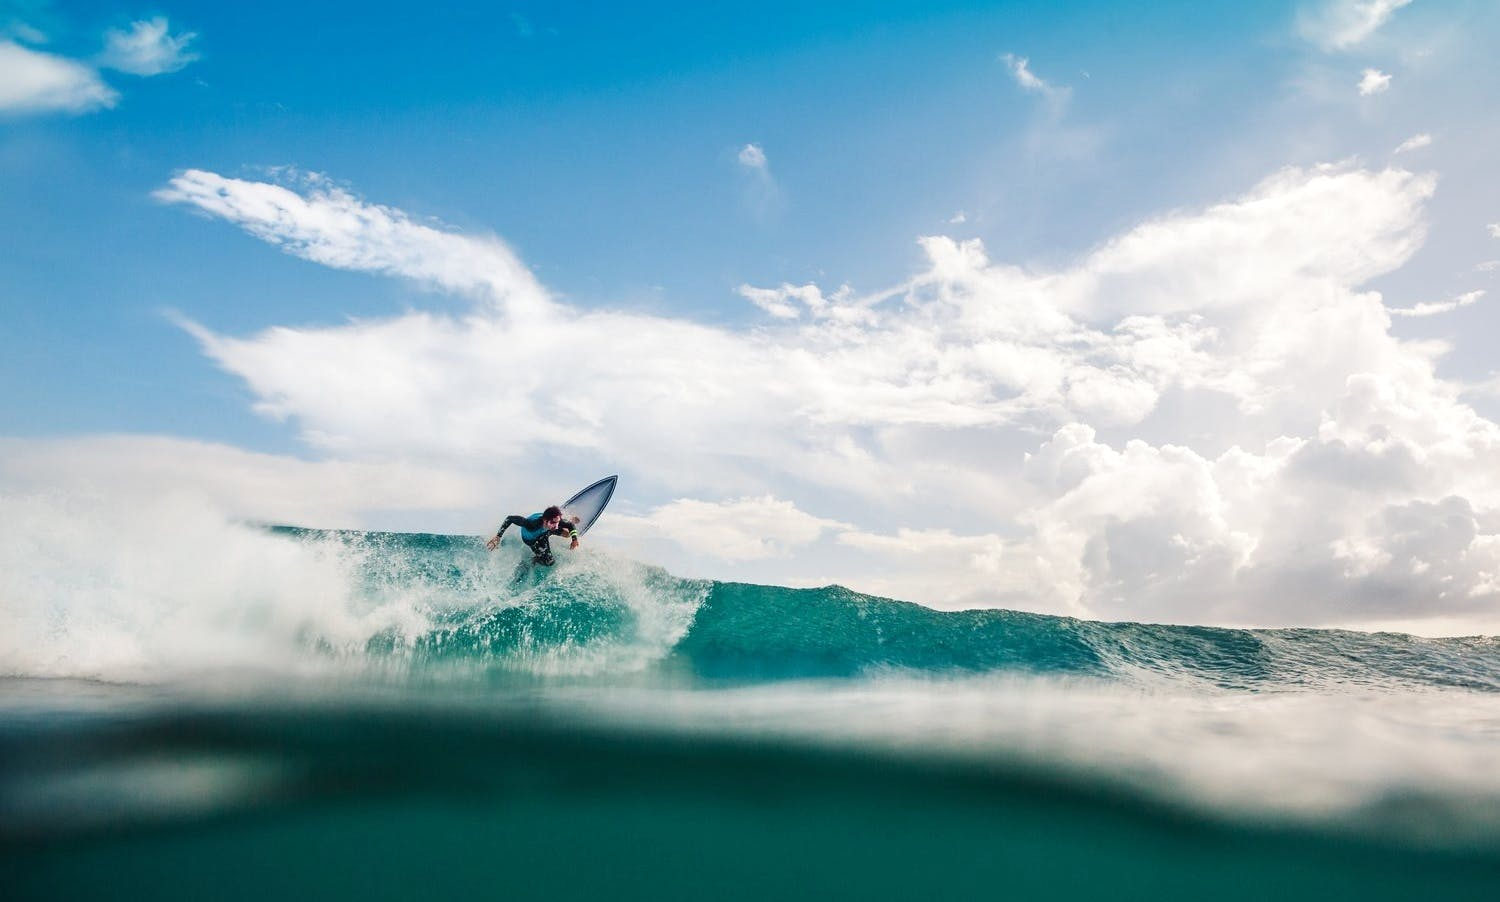 Enjoy Life... Come And Surf With Us!!